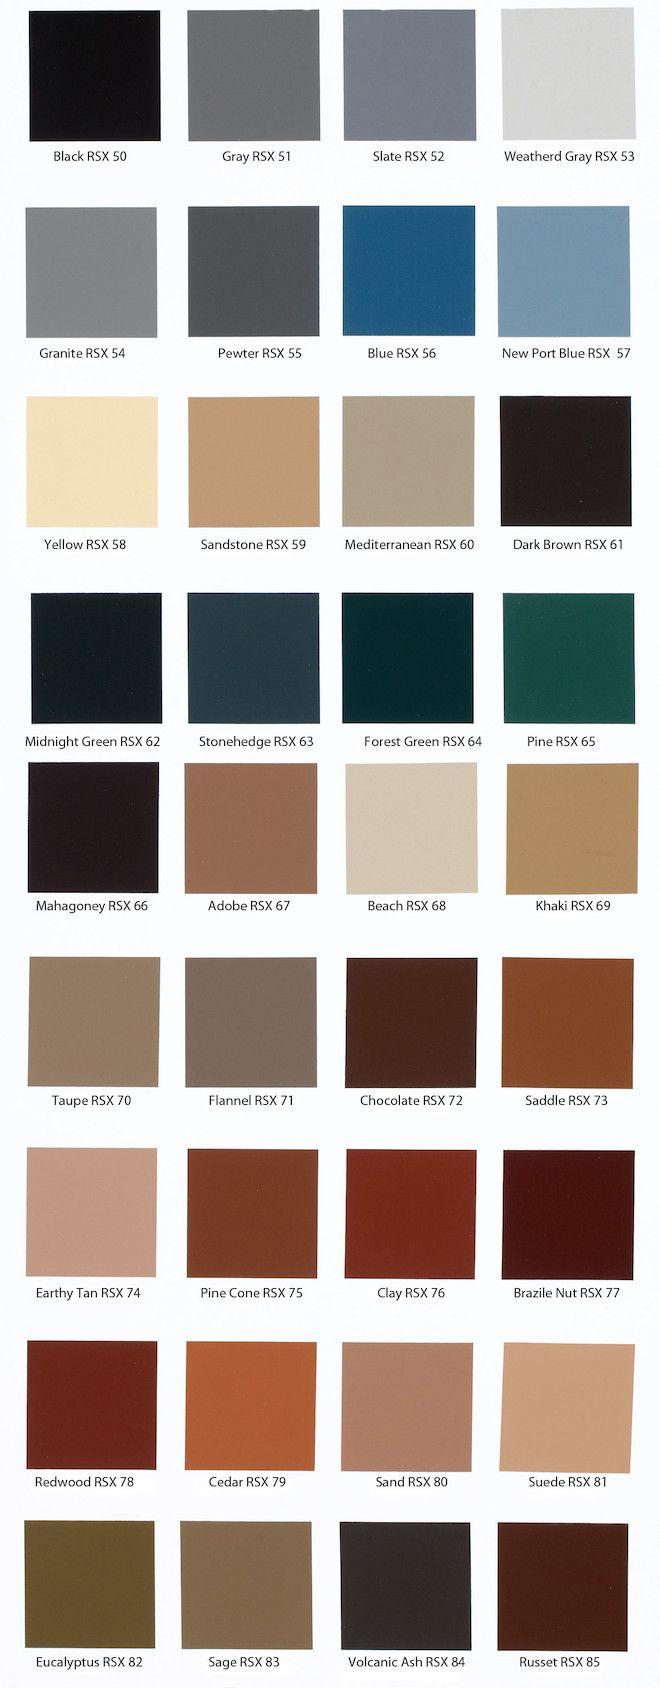 Behr Solid Concrete Stain Color Chart Concrete Stain Colors Deck Paint Colors Deck Paint